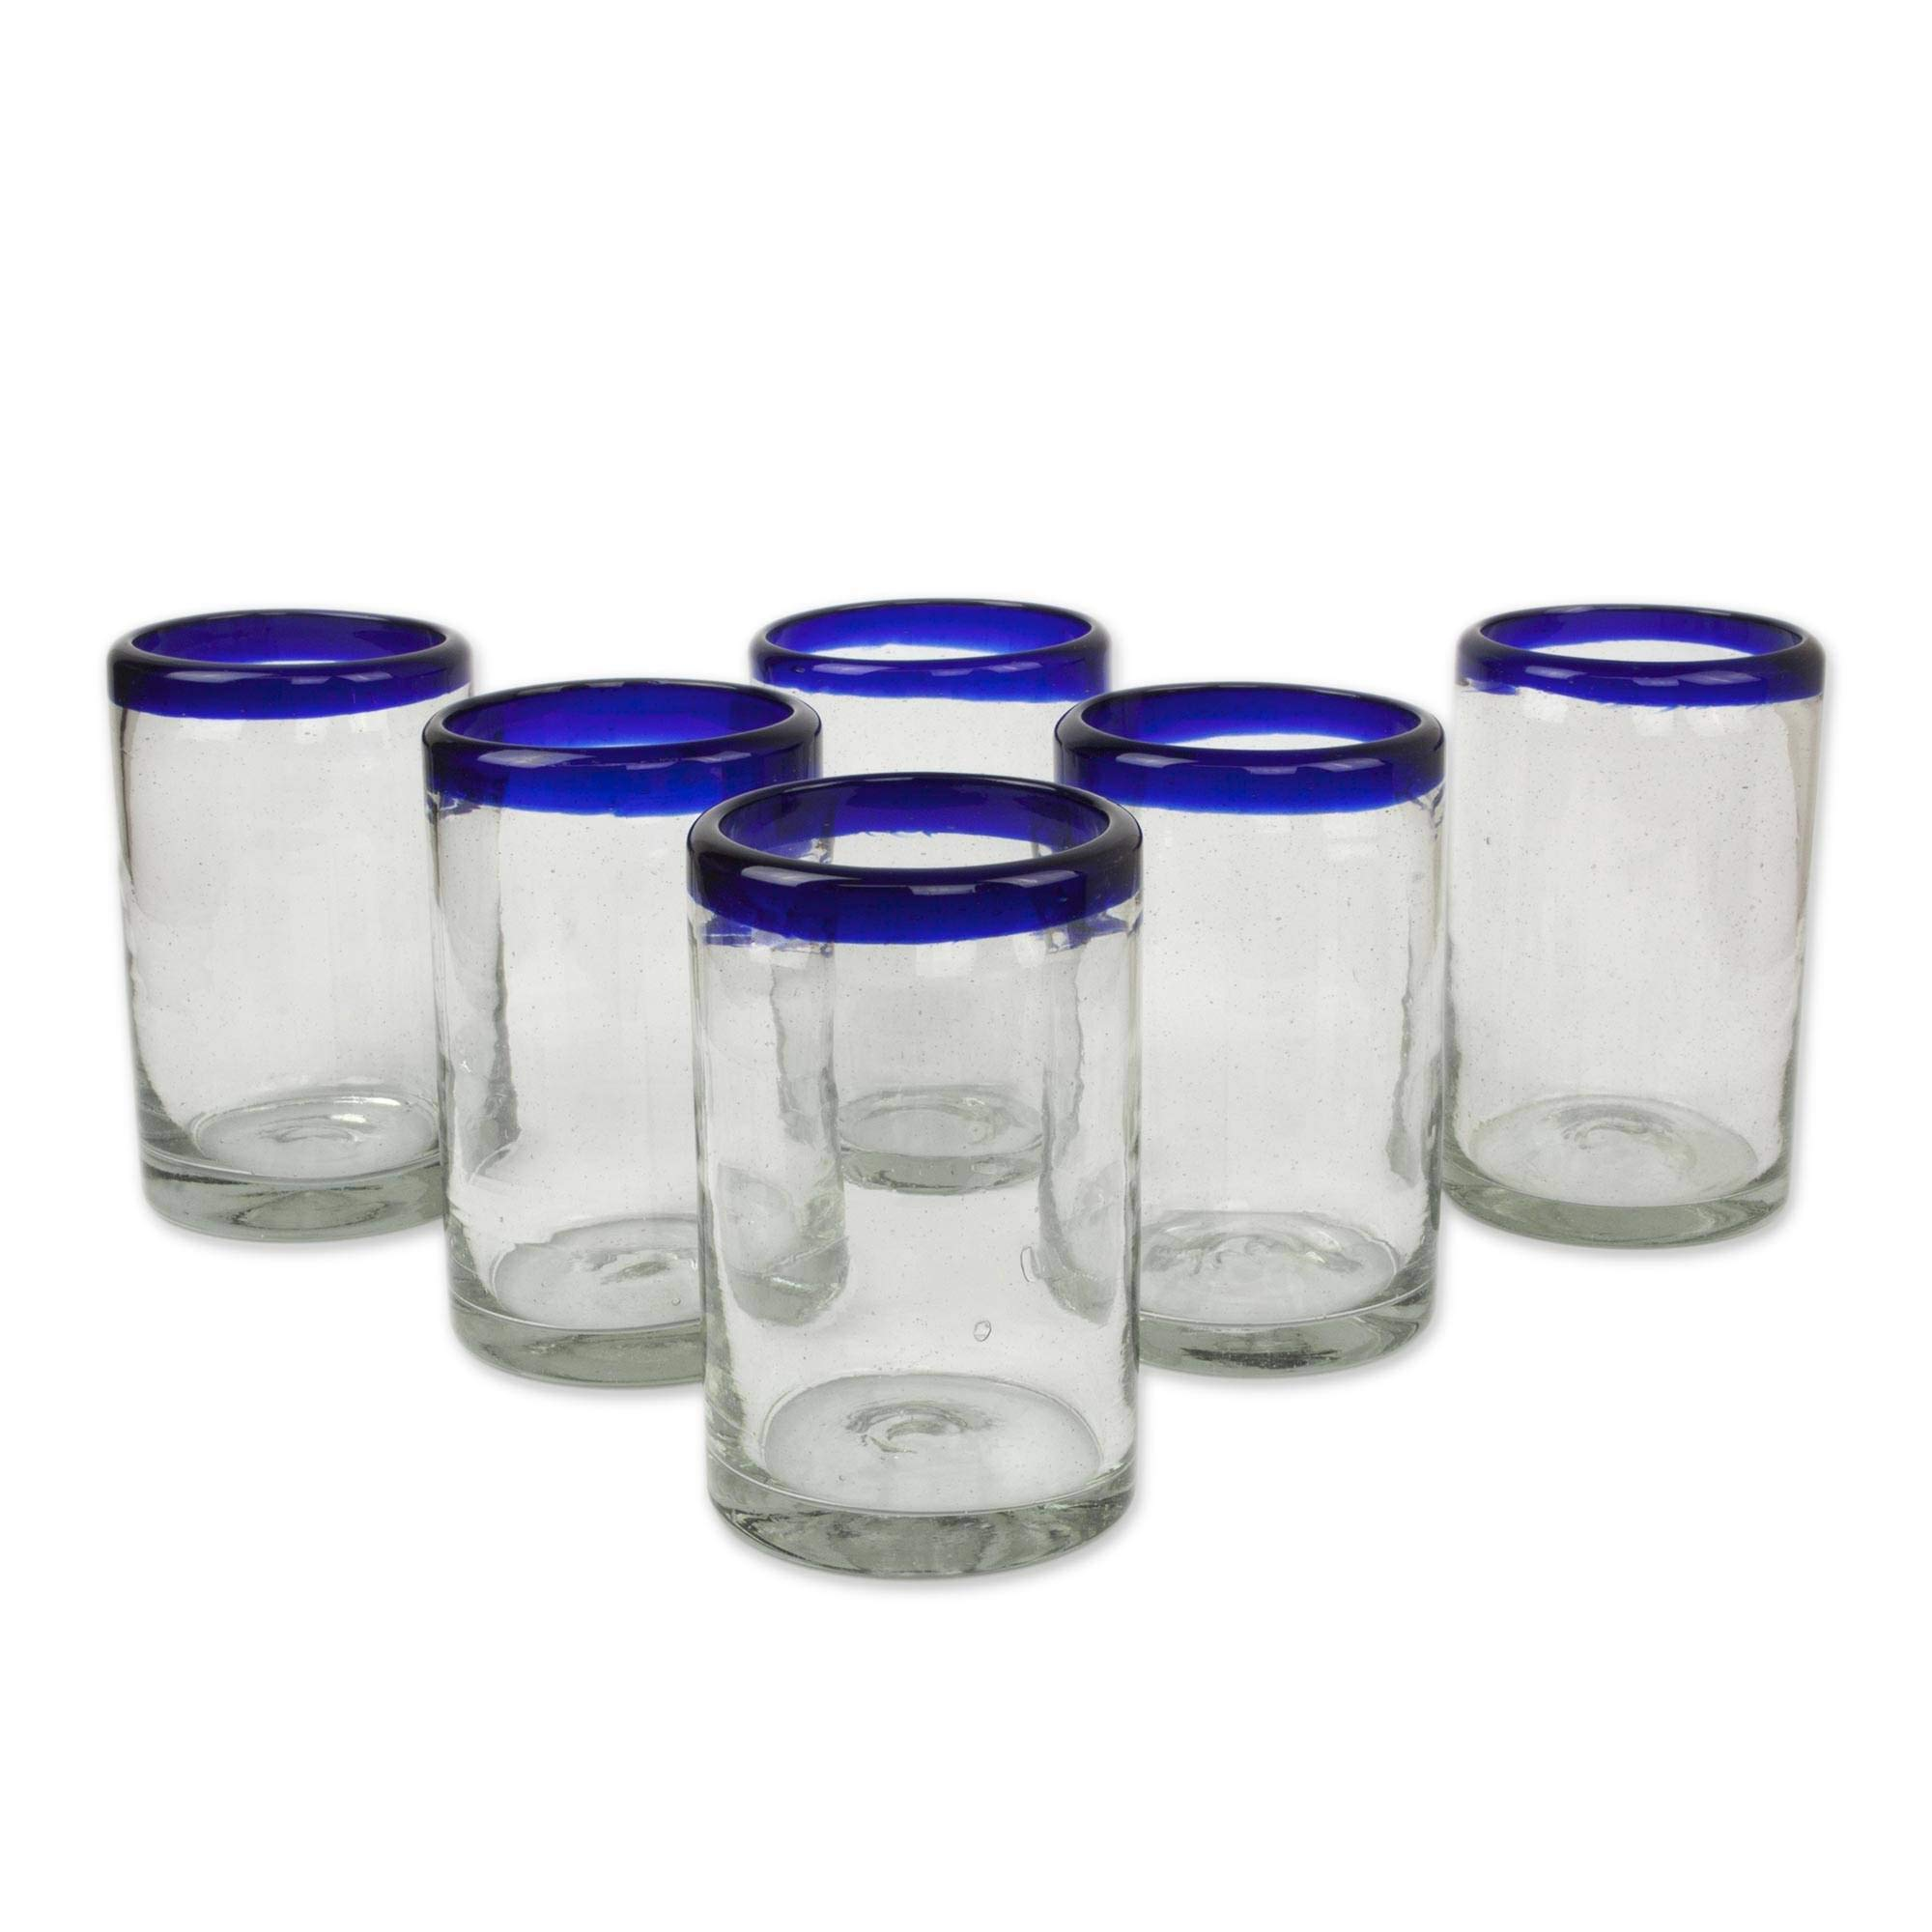 NOVICA Artisan Crafted Hand Blown Clear Blue Rim Recycled Glass Juice Glasses, 14 oz. 'Classic' (set of 6) by NOVICA